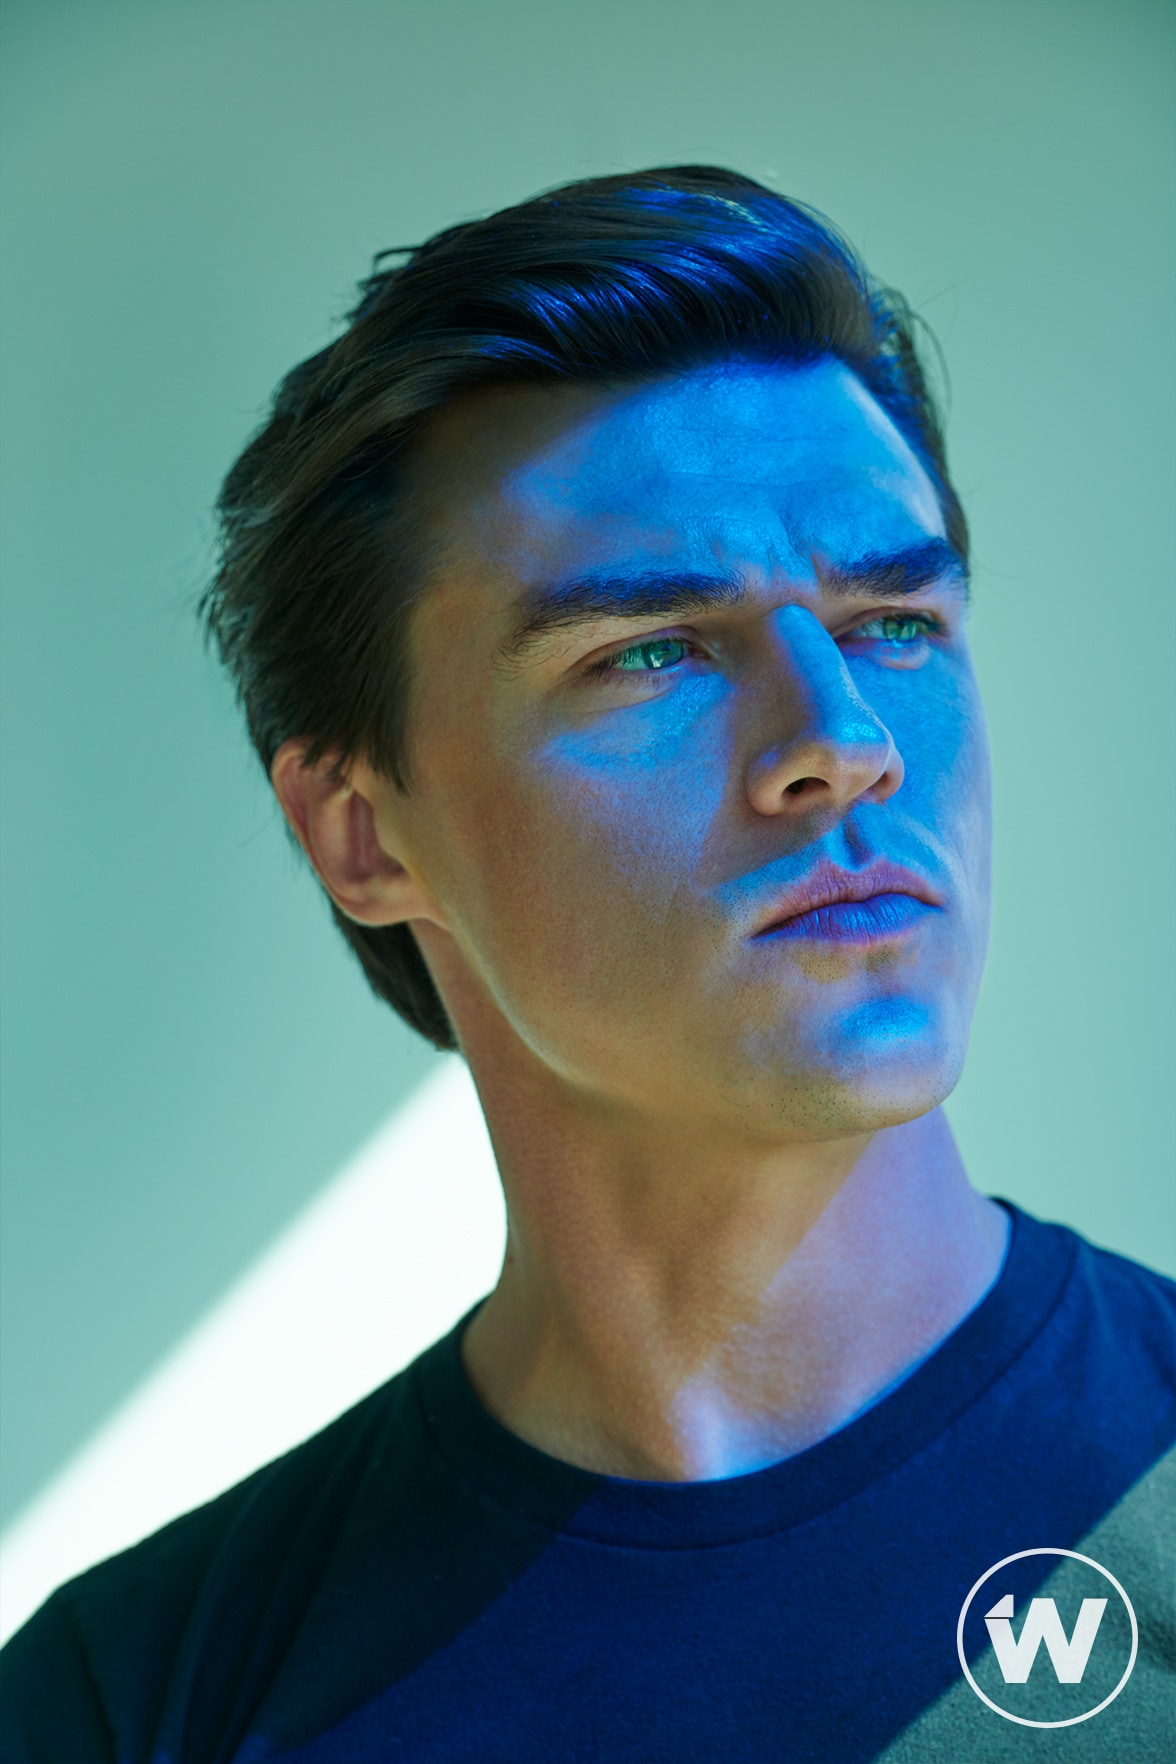 Finn Wittrock, The Assassination of Gianni Versace